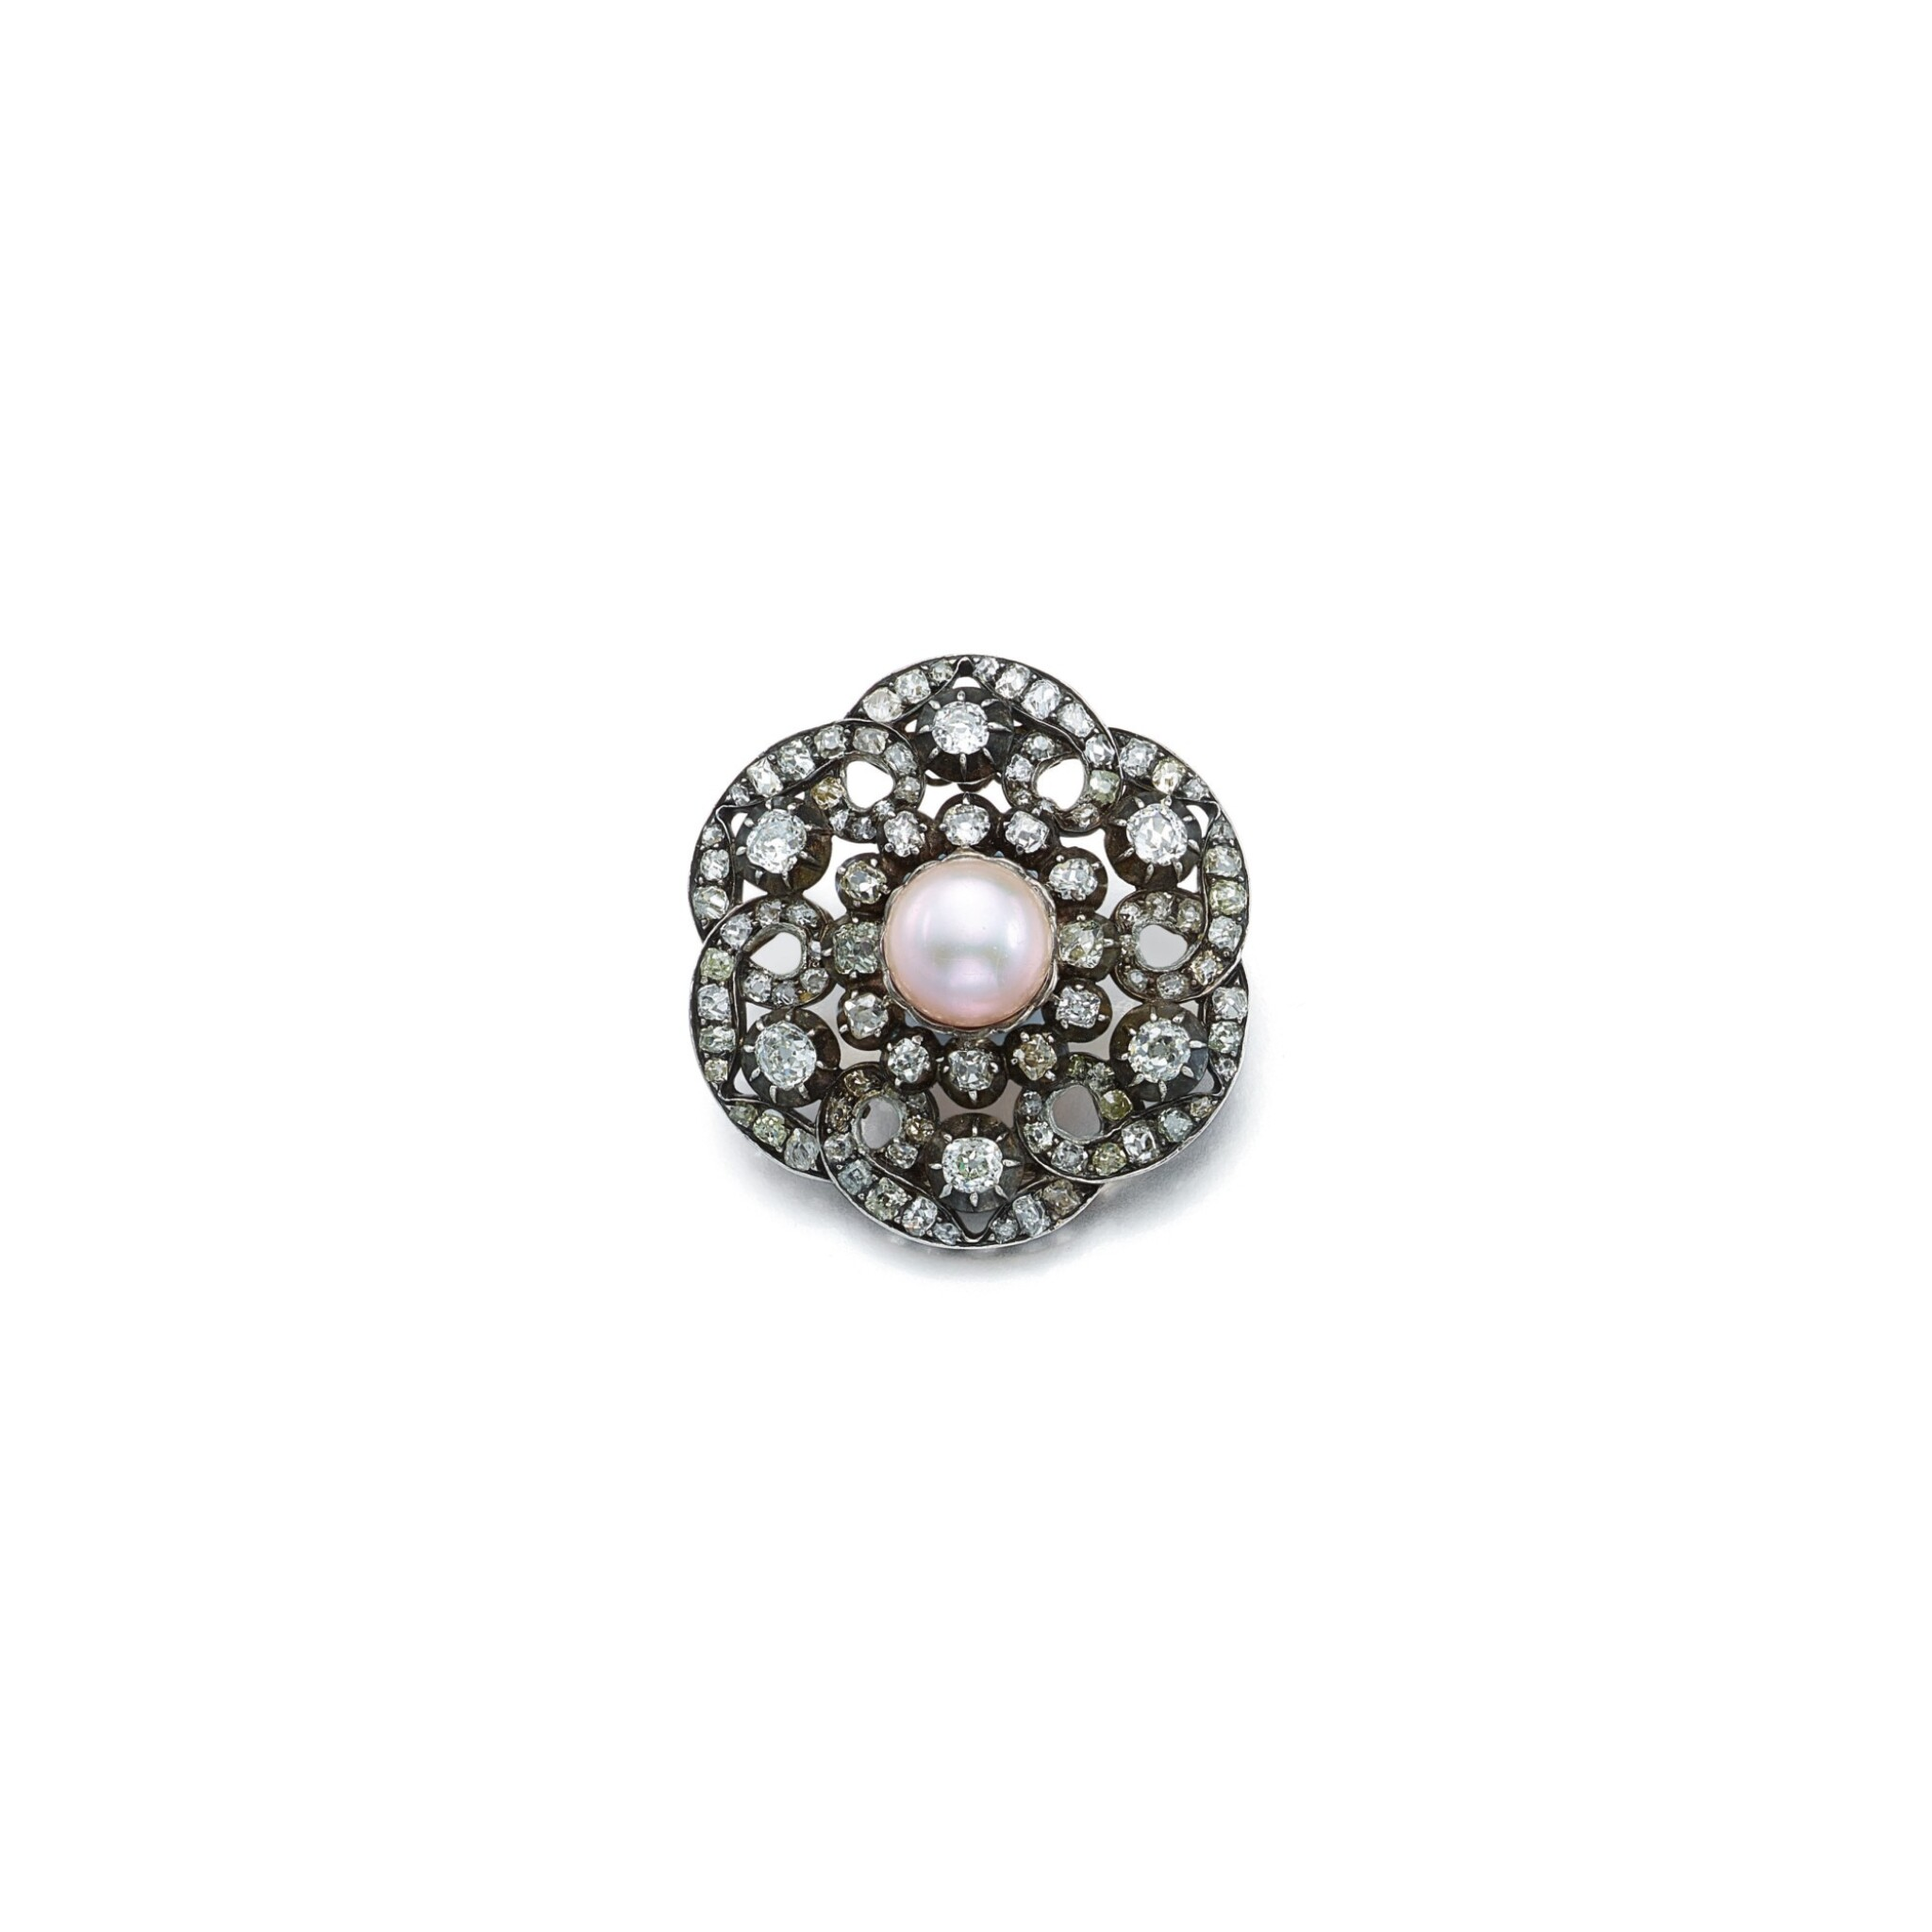 View full screen - View 1 of Lot 1673. DIAMOND AND PEARL BROOCH   鑽石 配 珍珠 別針   .